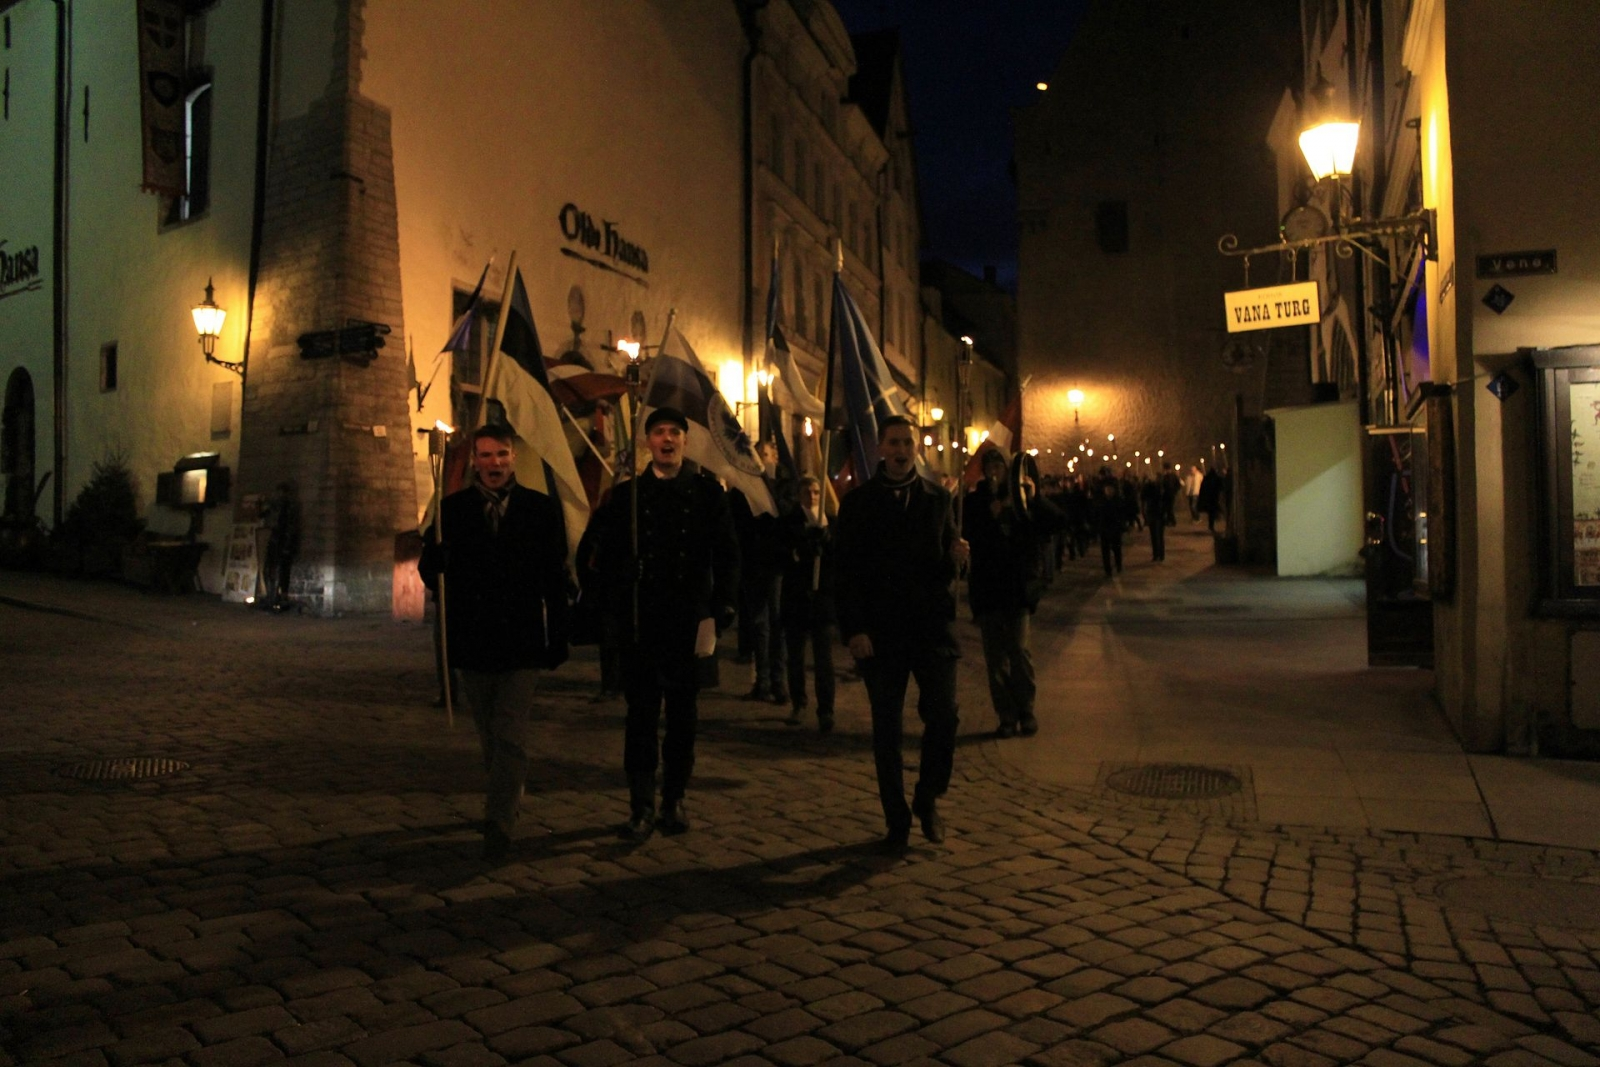 Estonia torchlit parade